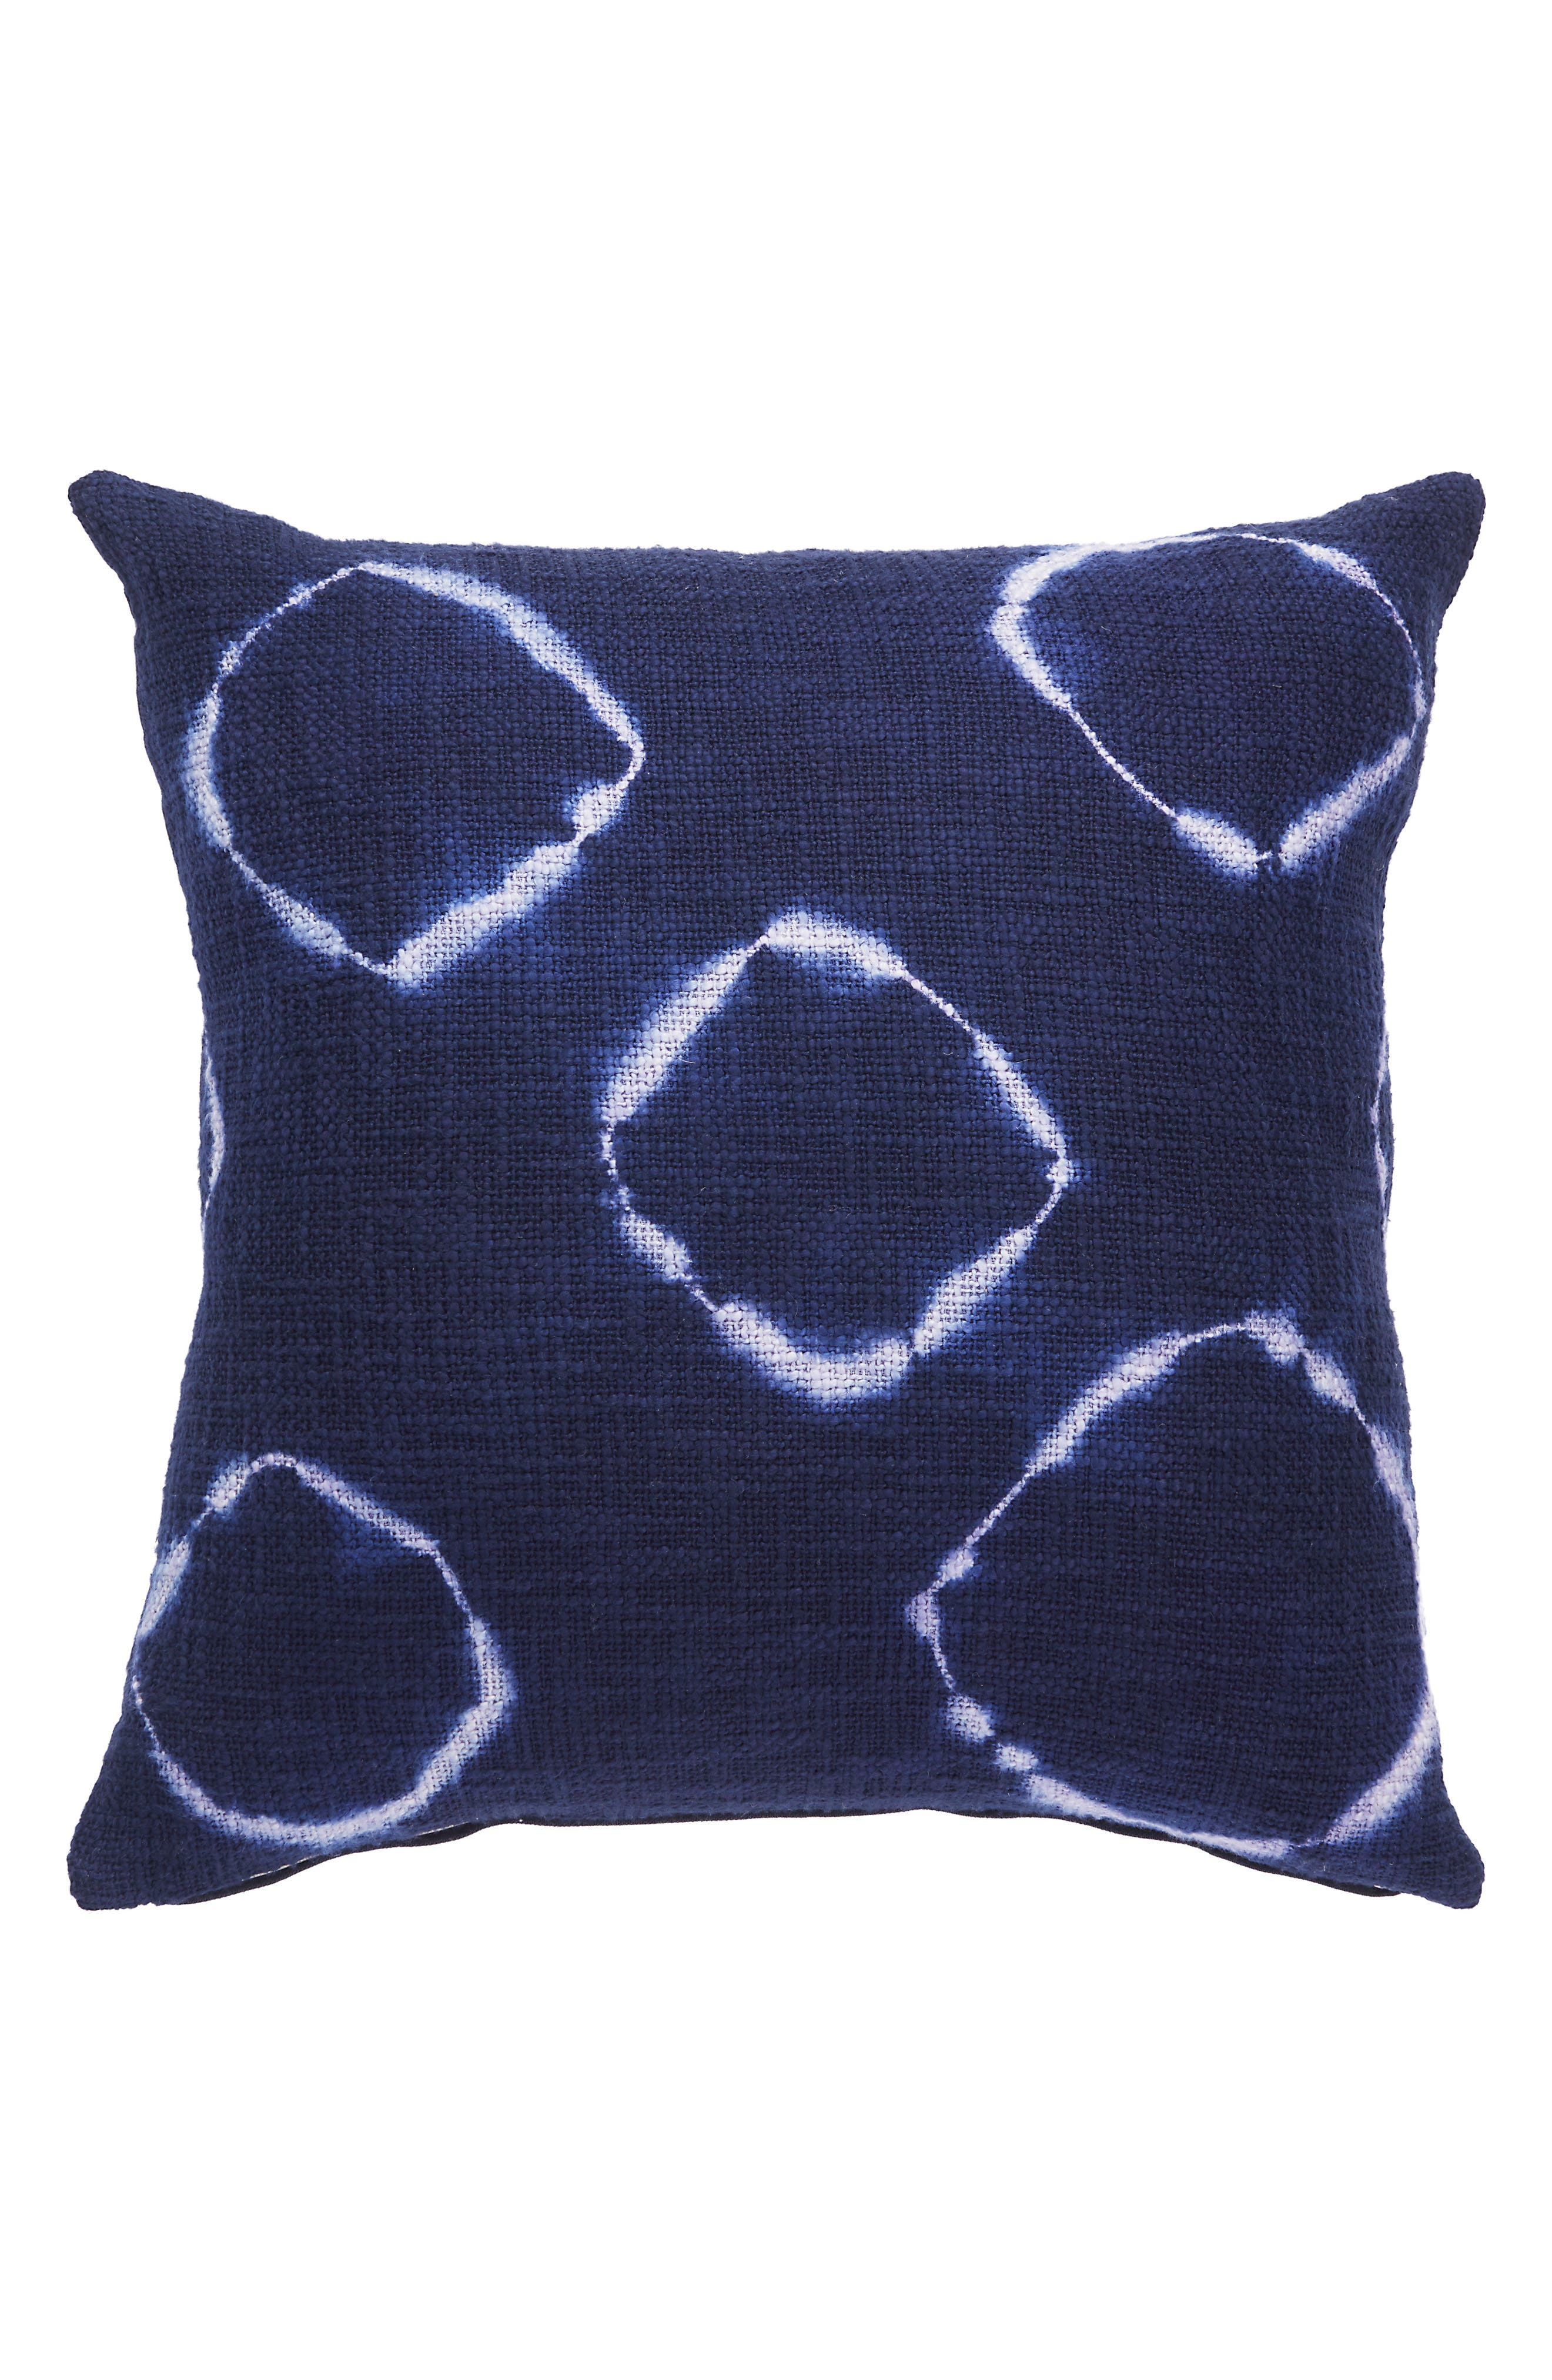 Main Image - Jaipur Medieval Blue Accent Pillow